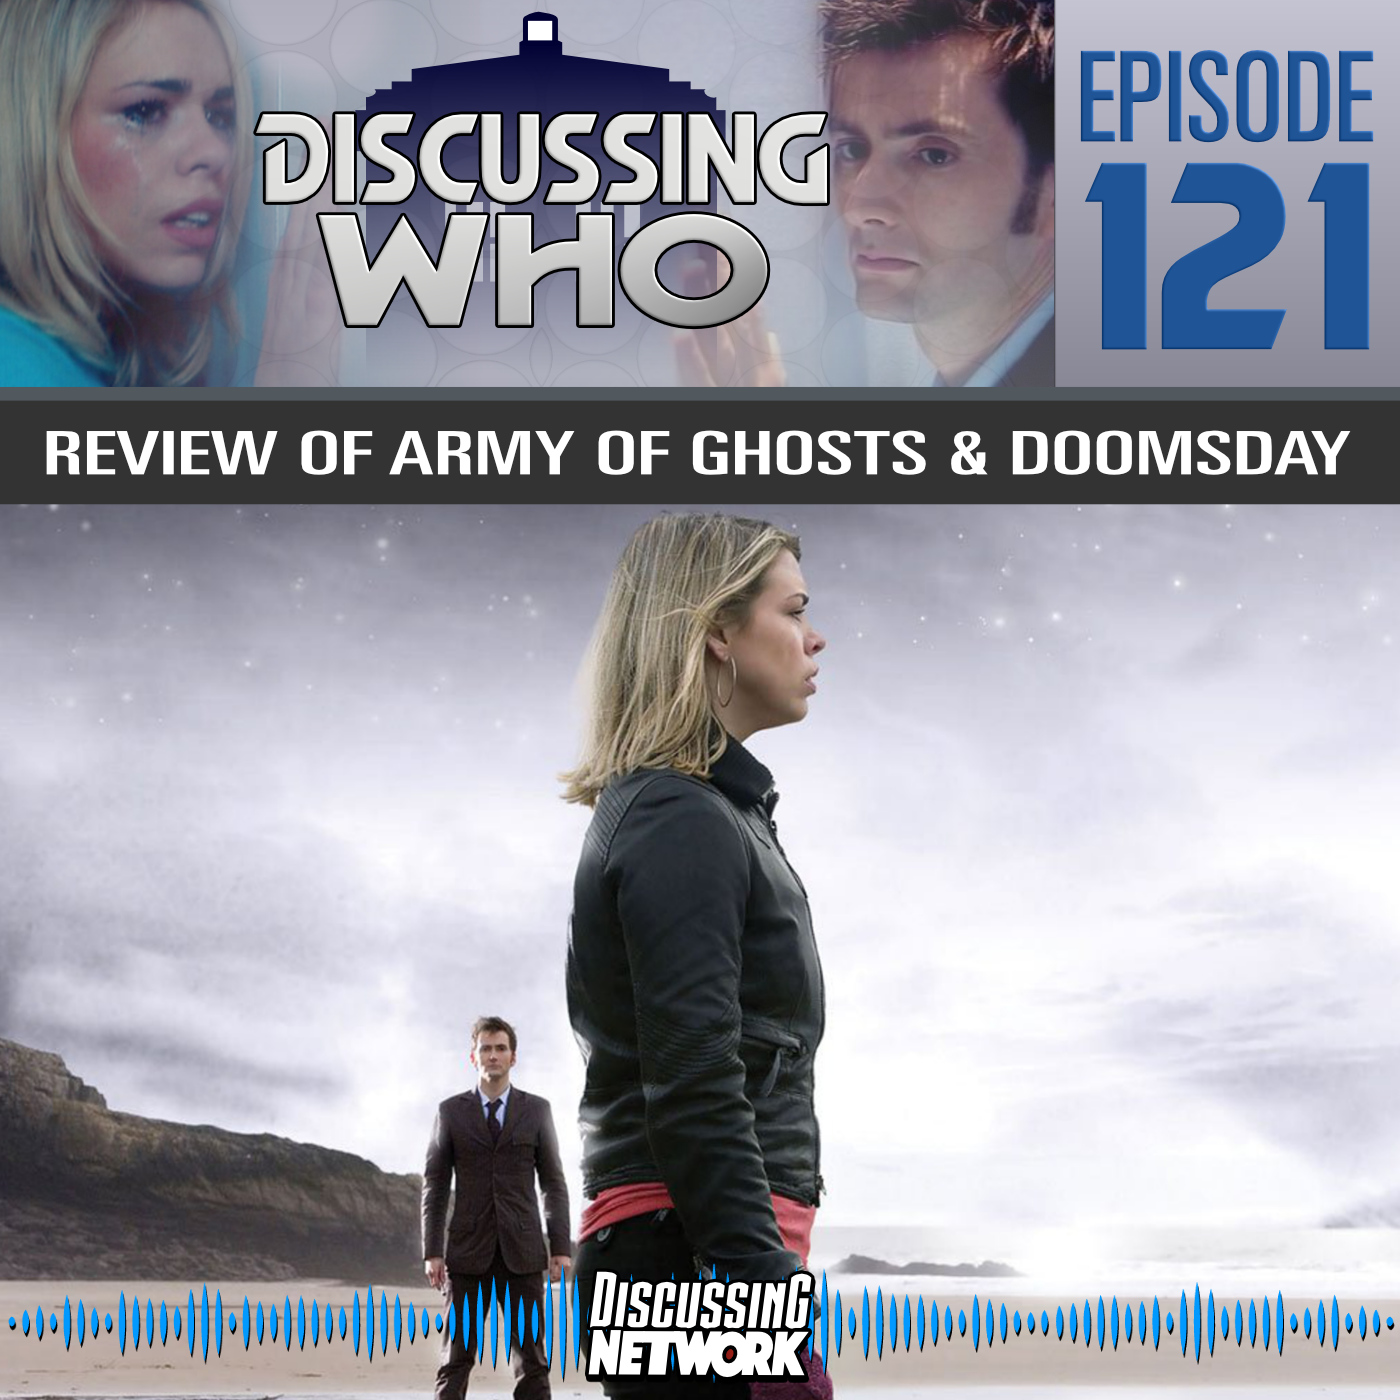 Episode 121: Review of Army of Ghosts and Doomsday, Doctor Who